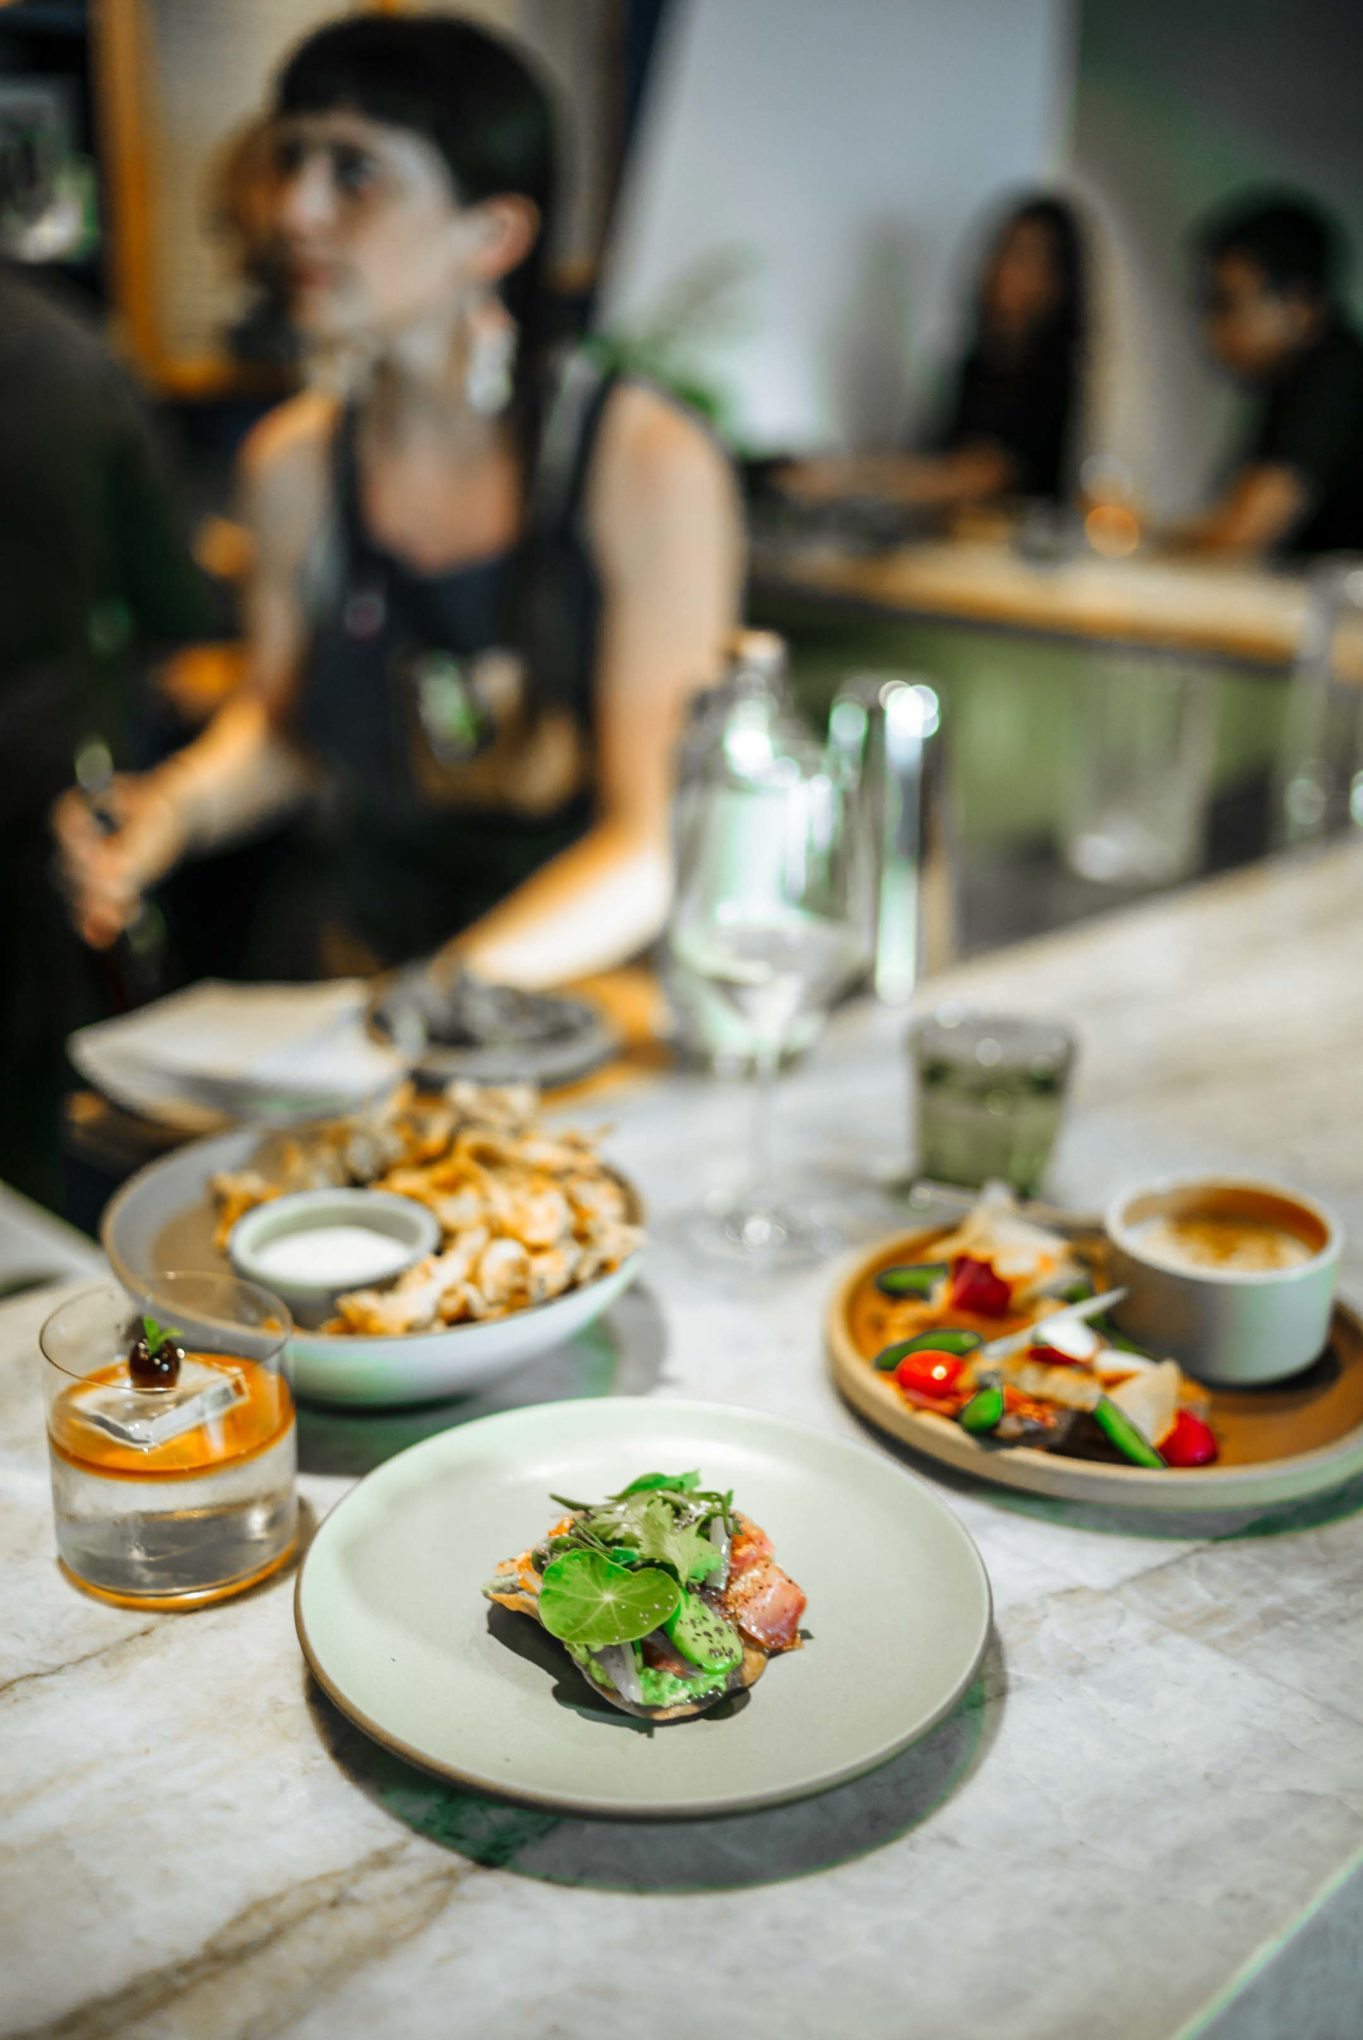 "True Laurel has the best bar food in San Francisco from david barzelay, try the tostada, hot crab dip, and fried hen of the woods mushrooms with ""sour cream n'alliums"" dip"